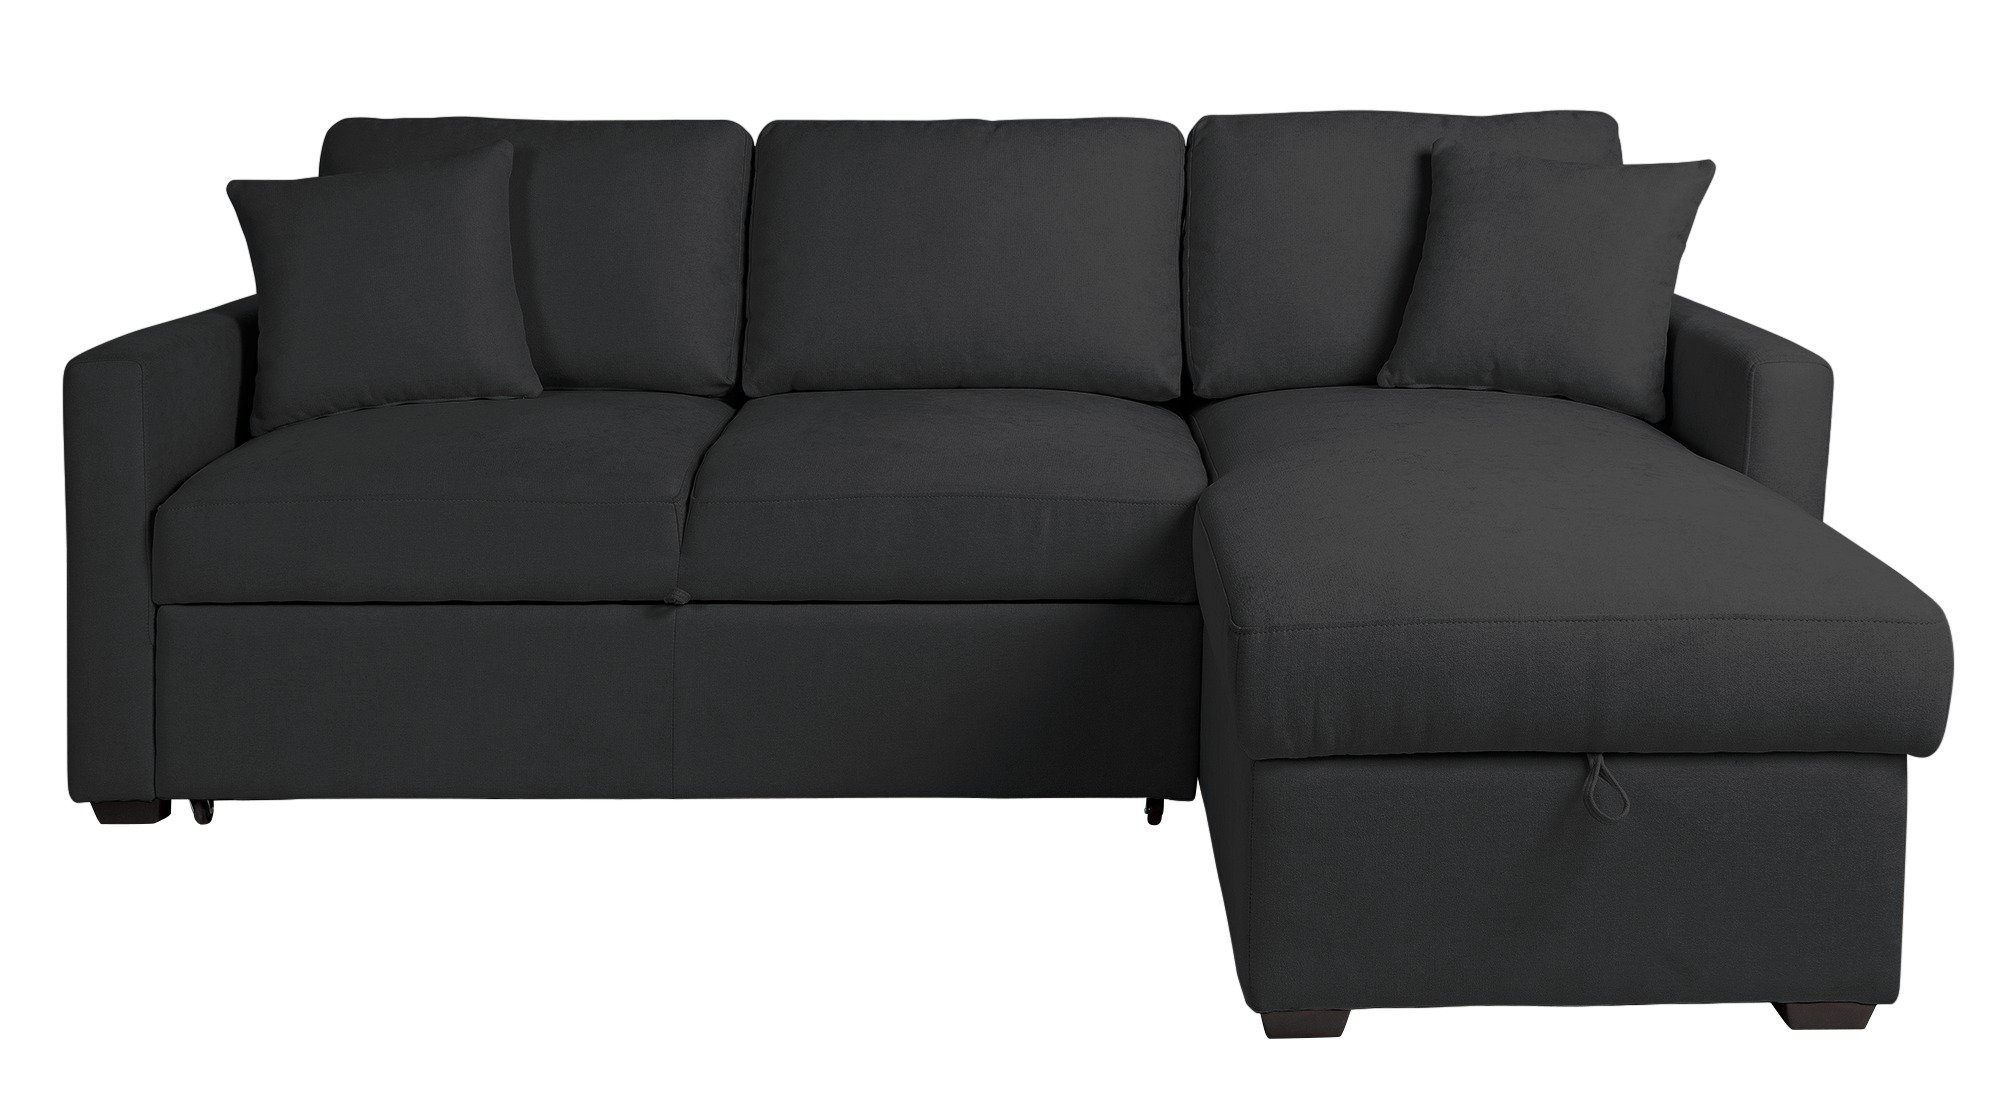 Buy Argos Home Reagan Right Corner Fabric Sofa Bed - Charcoal